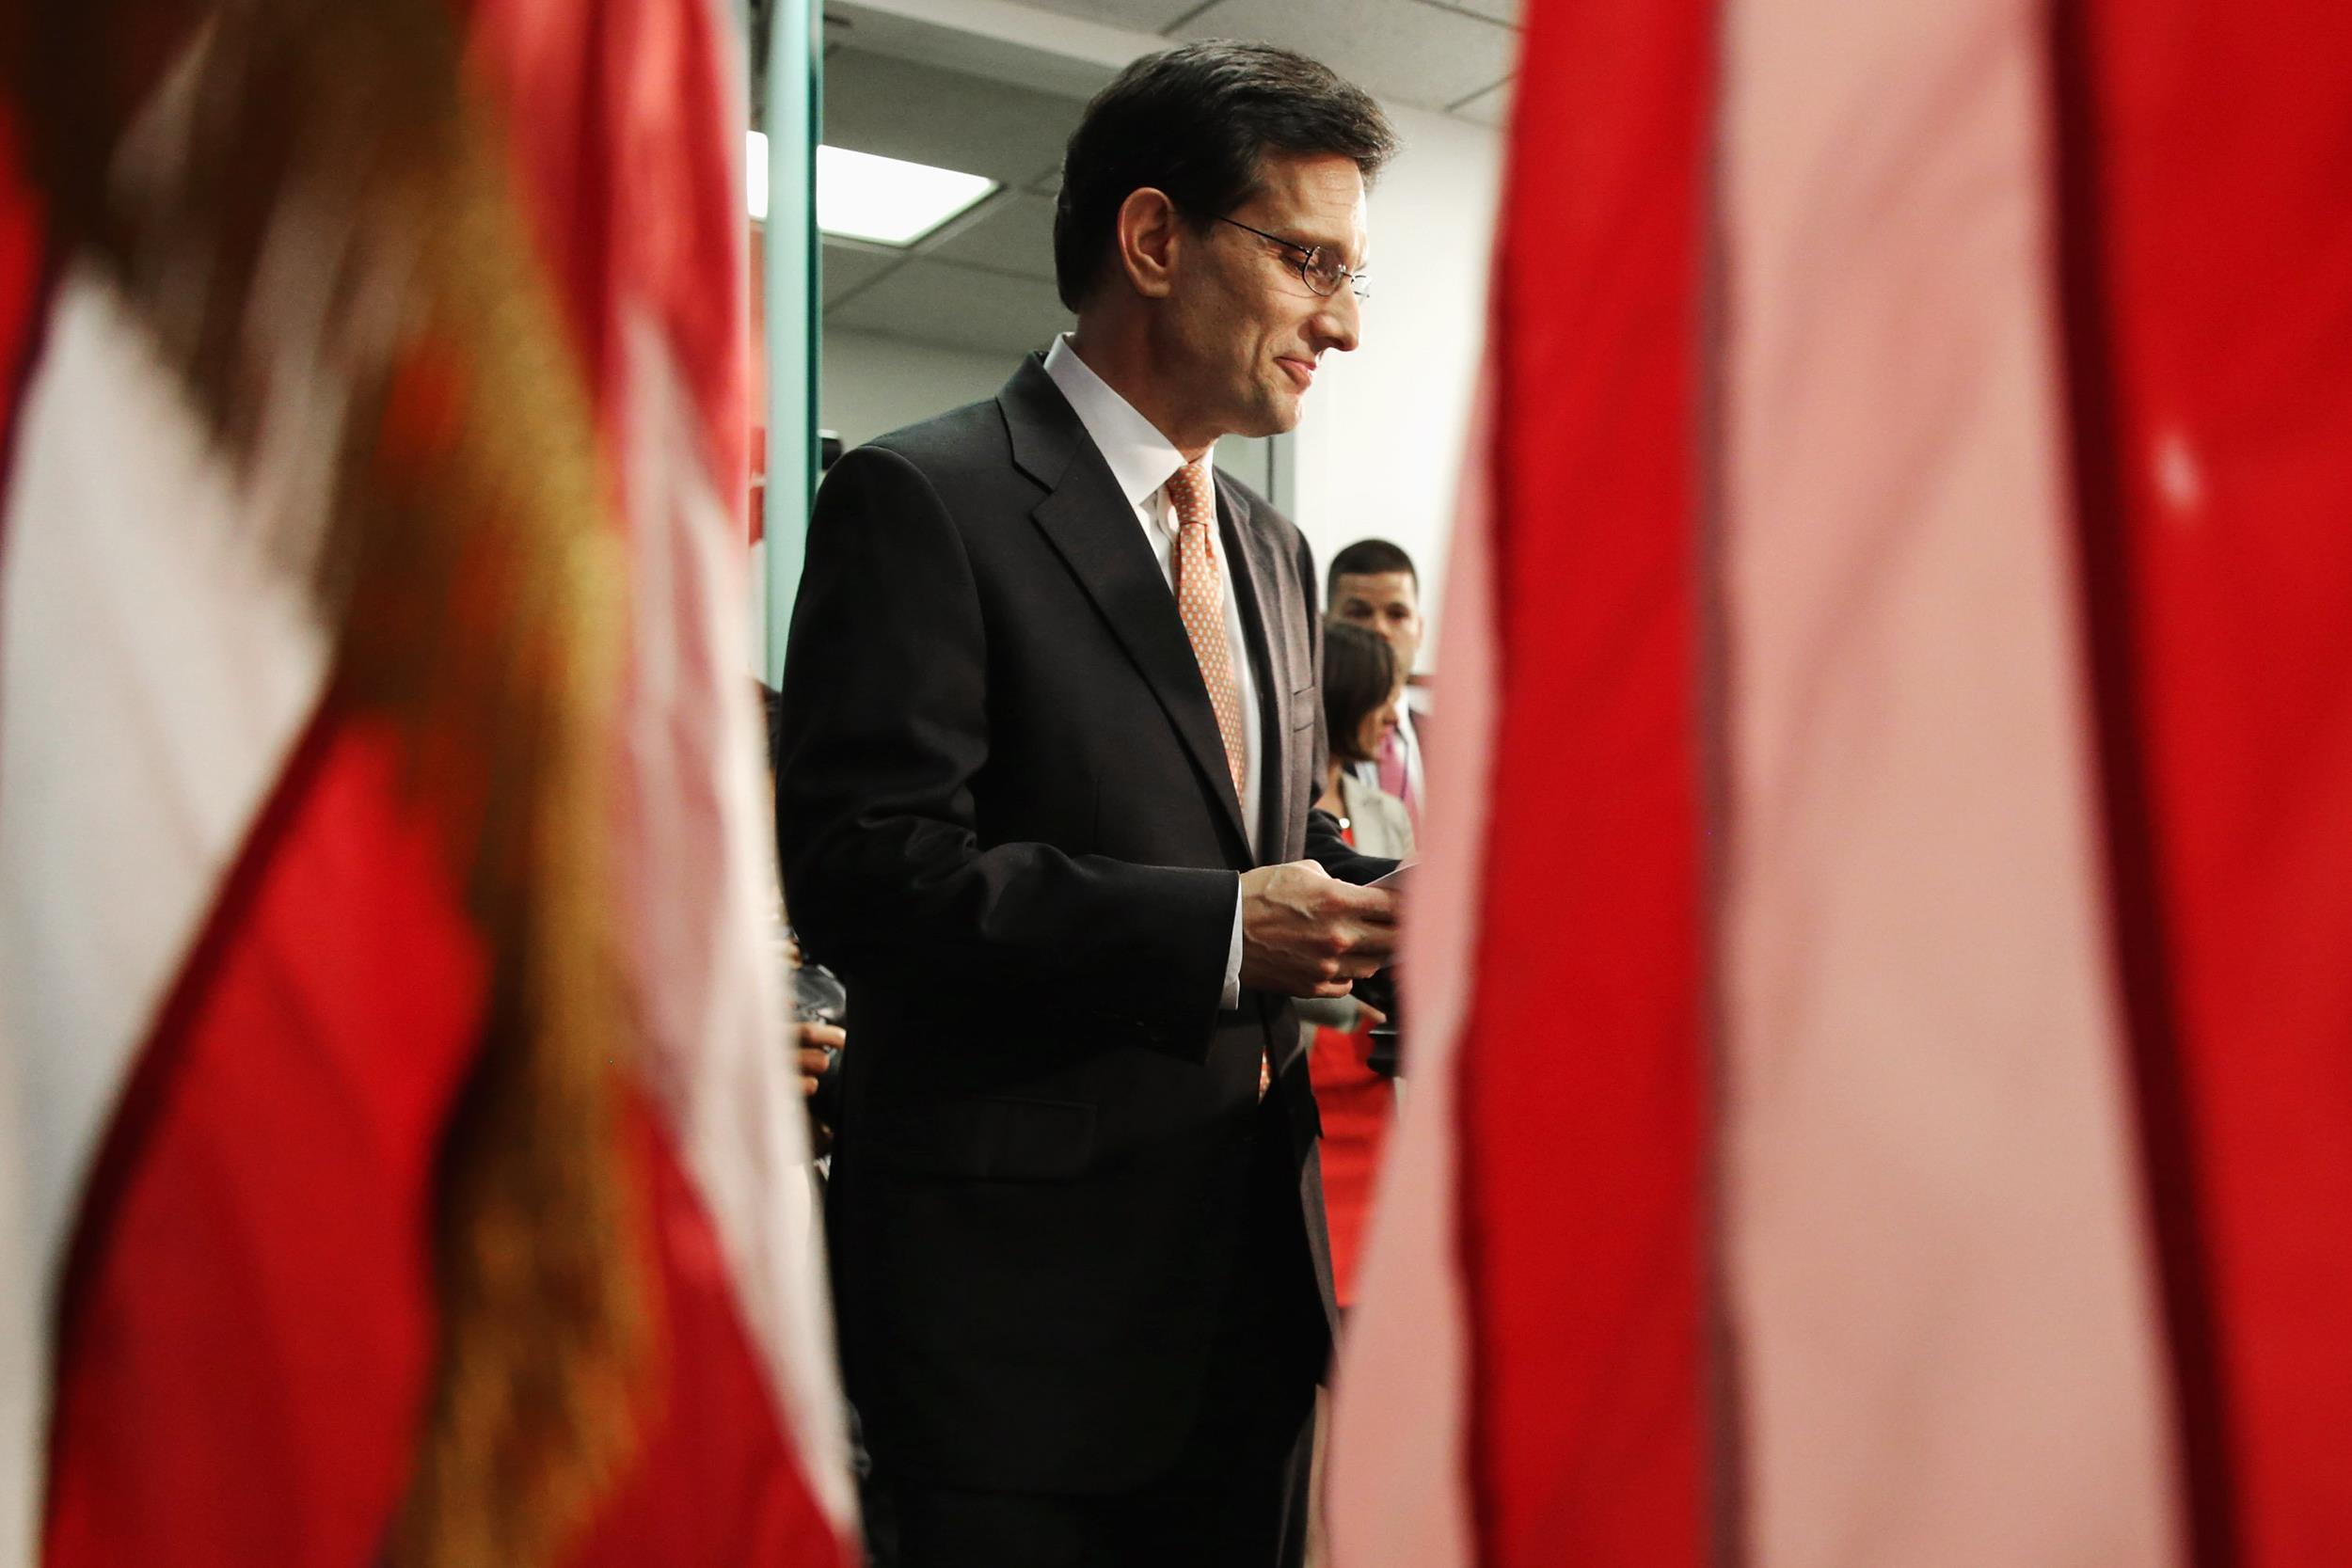 Image: House Majority Leader Eric Cantor arrives for a news conference